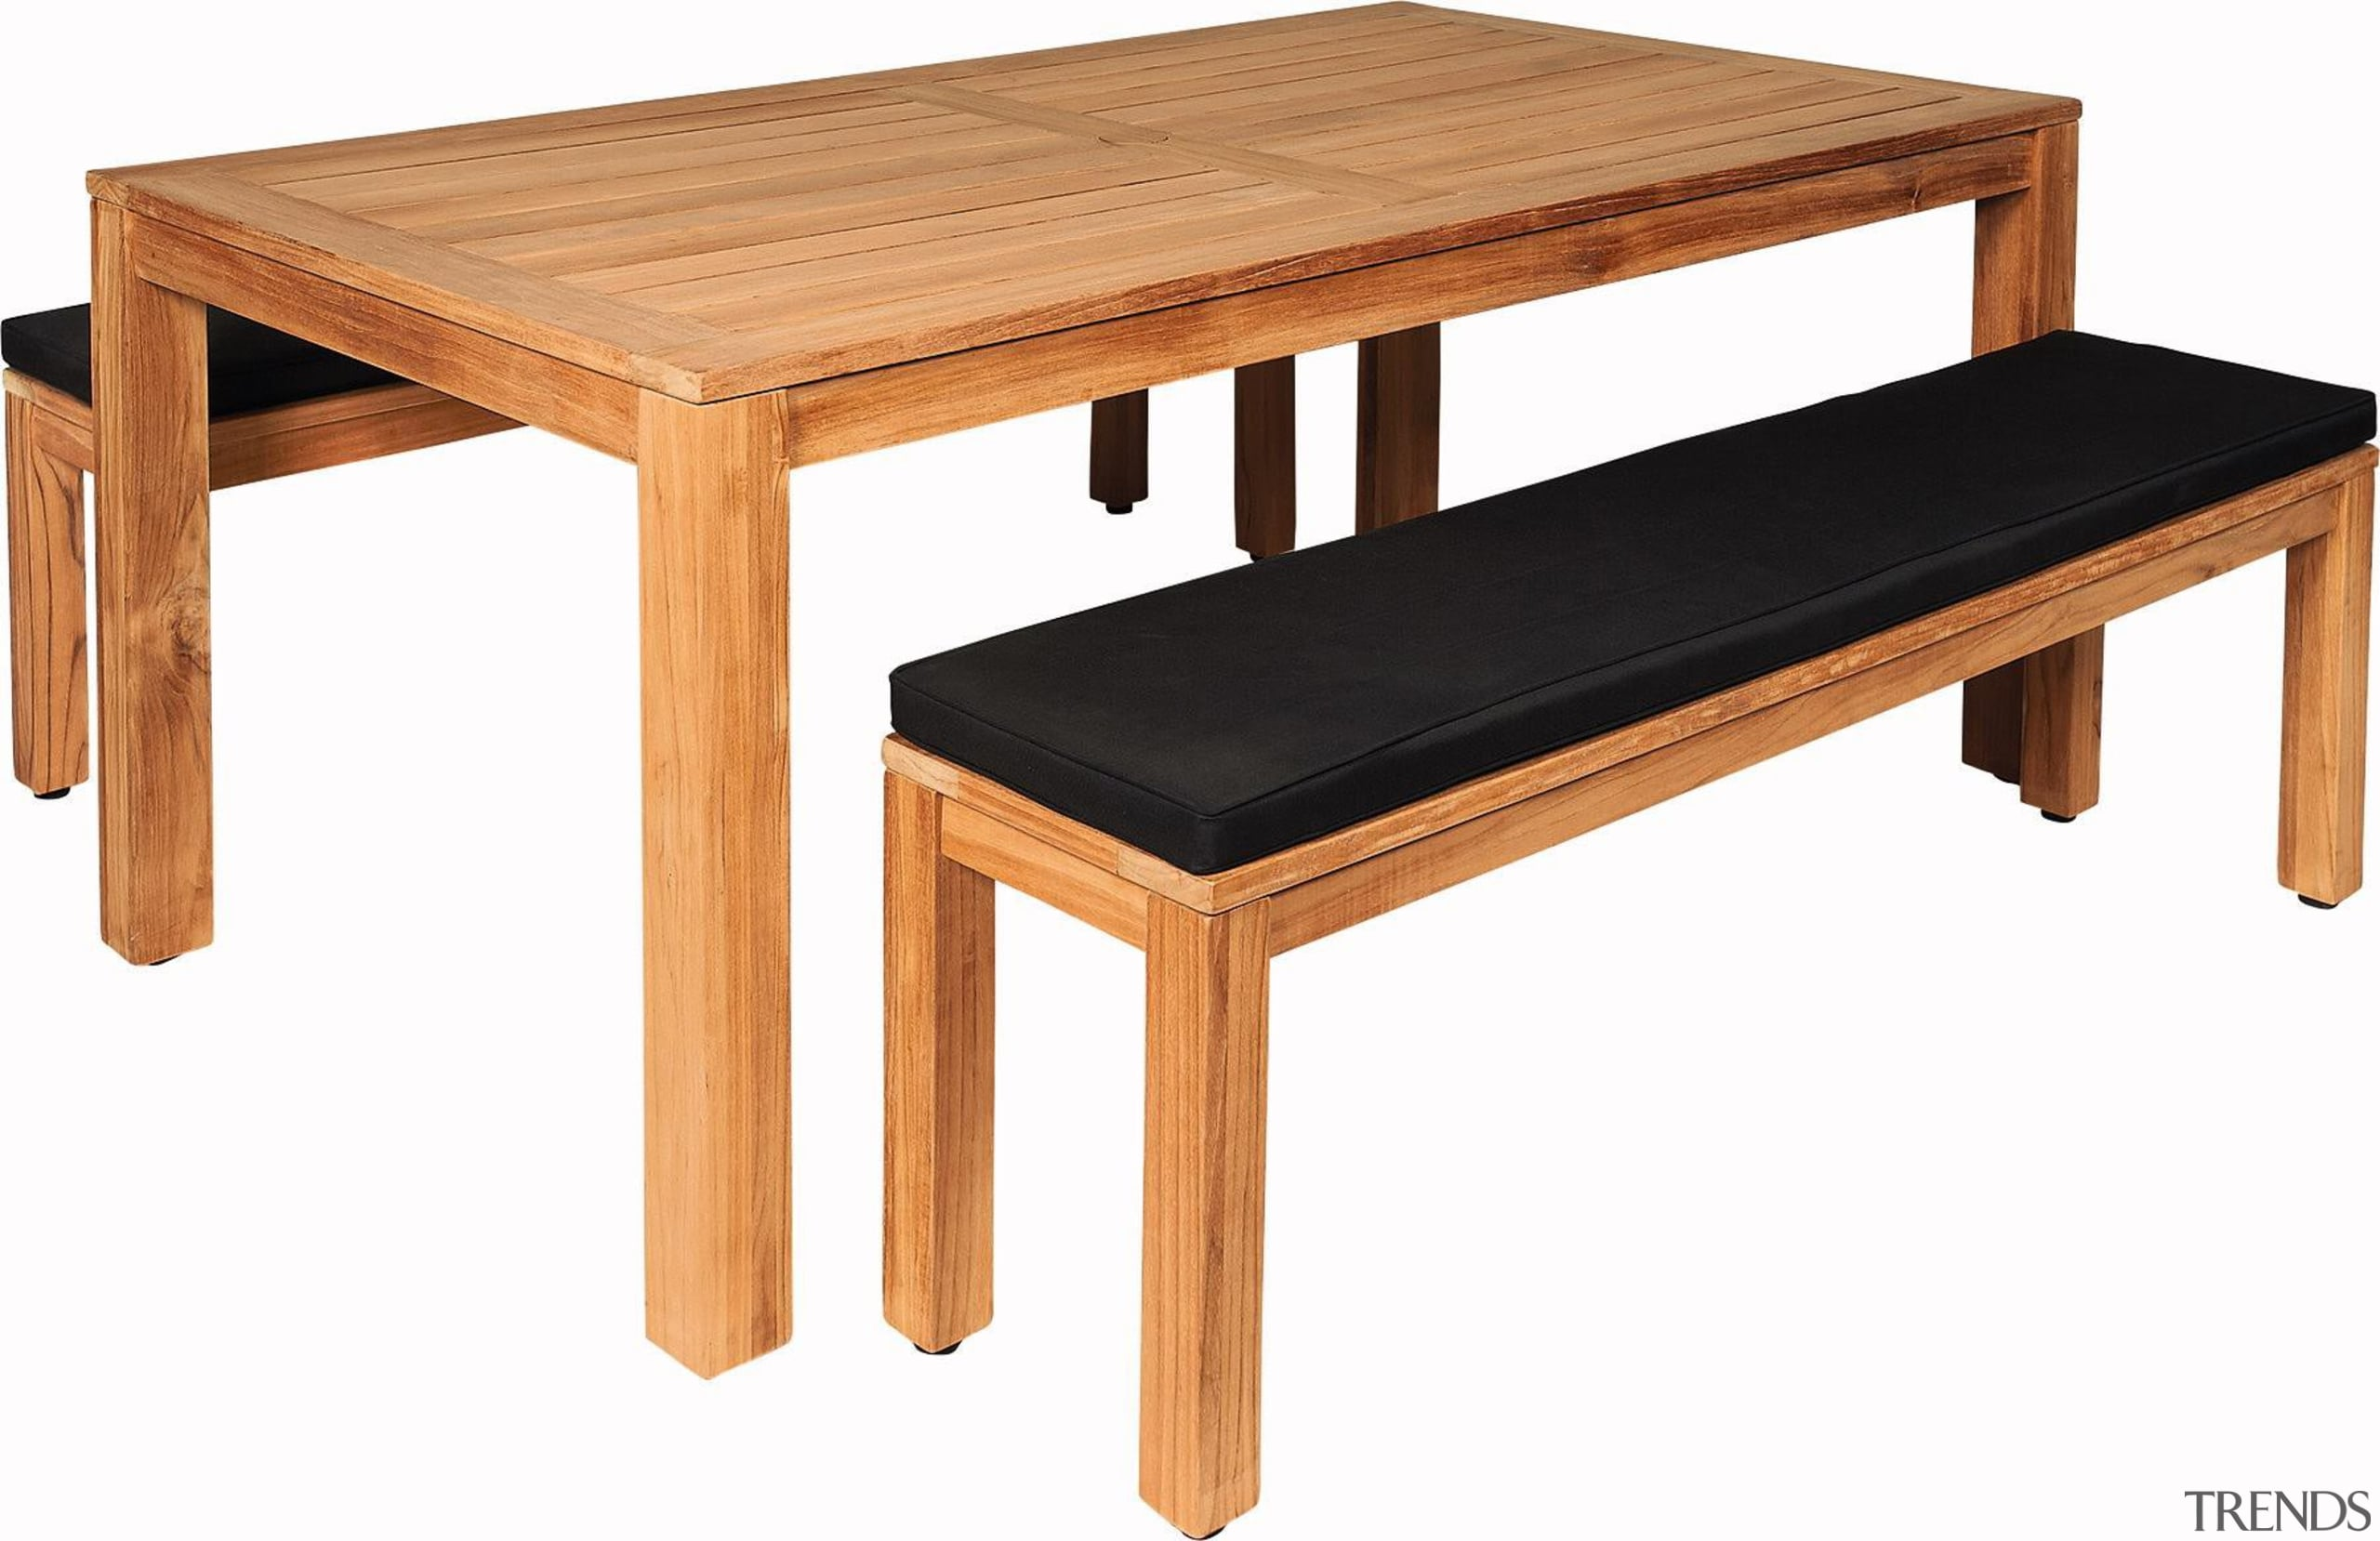 There's nothing quite like a Kiwi summer – furniture, product design, table, white